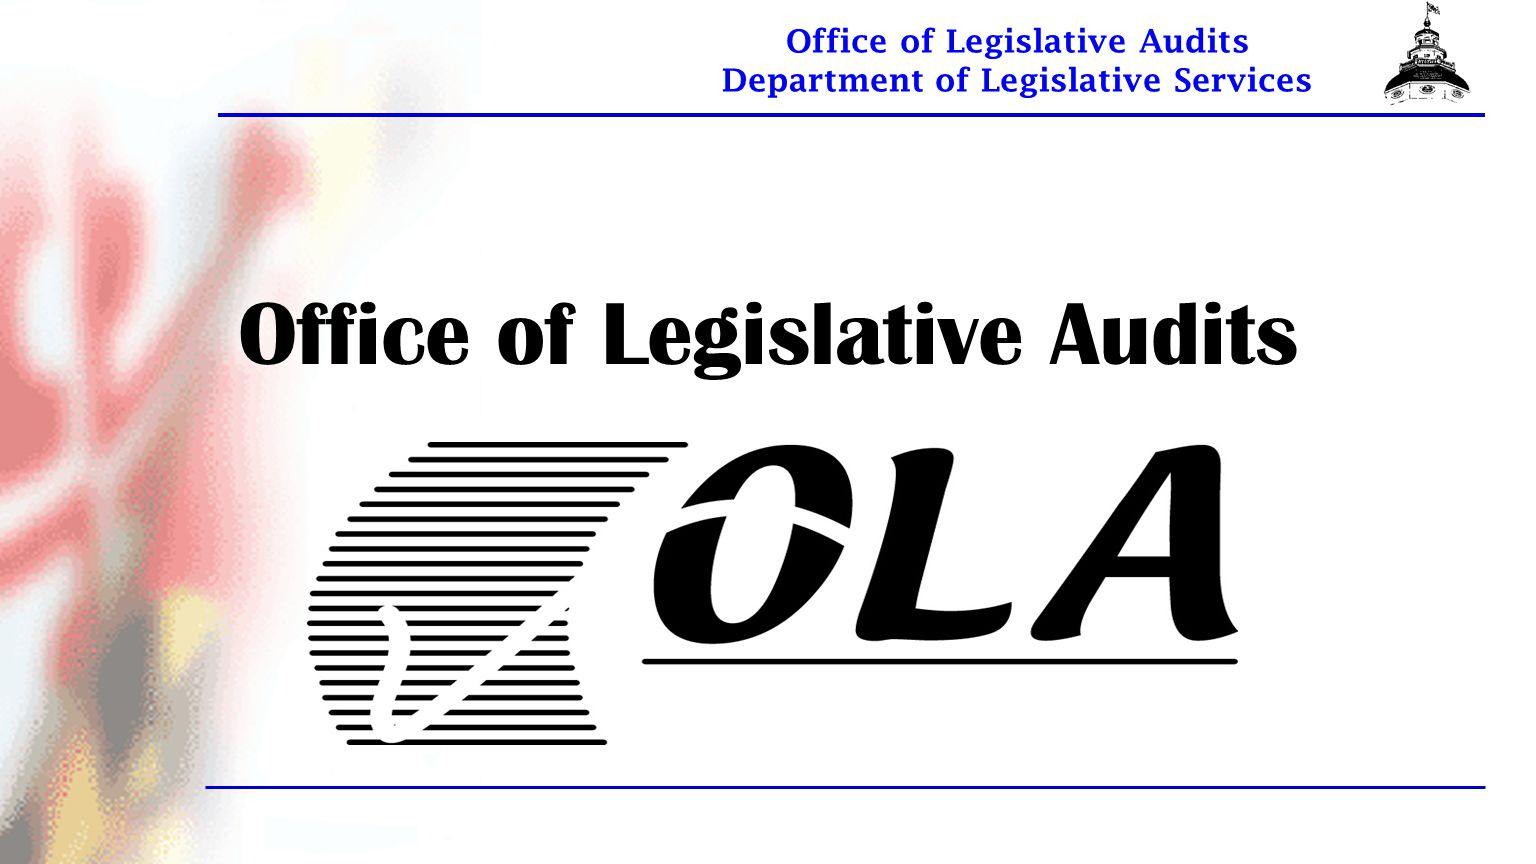 Office of Legislative Audits Department of Legislative Services Office of Legislative Audits